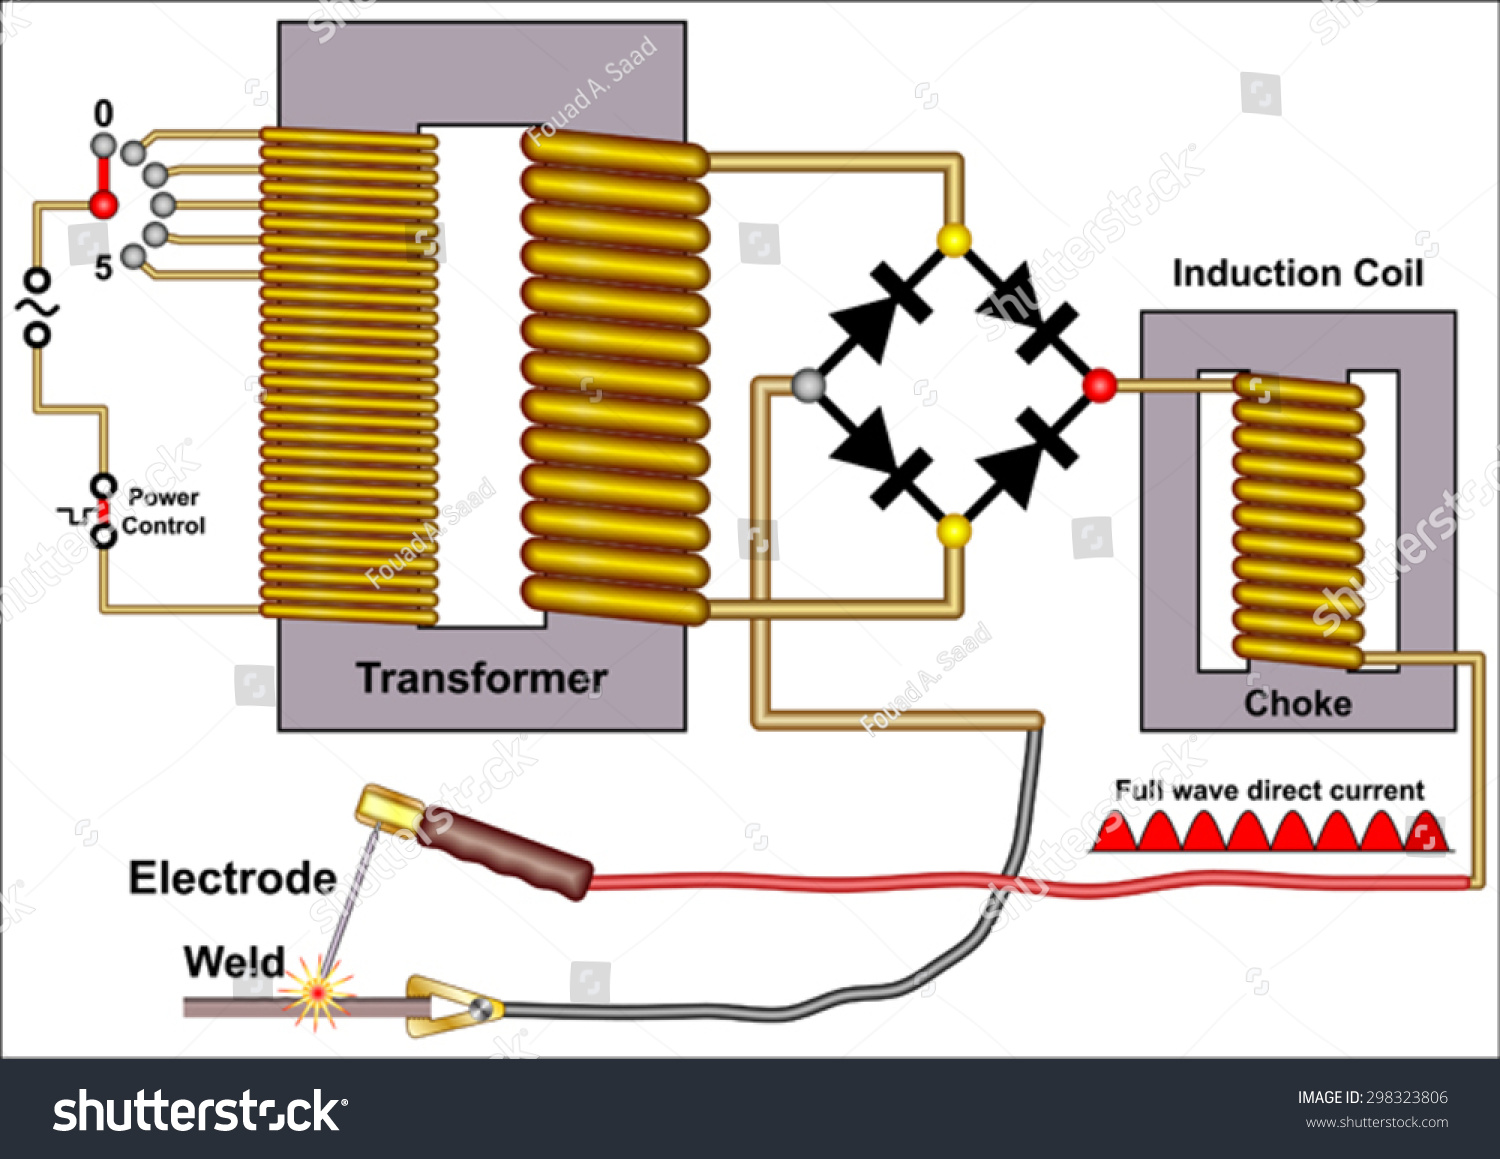 arc welding inverter circuit diagram electrical wiring diagram guide MOS FET Inverter Circuit Diagram